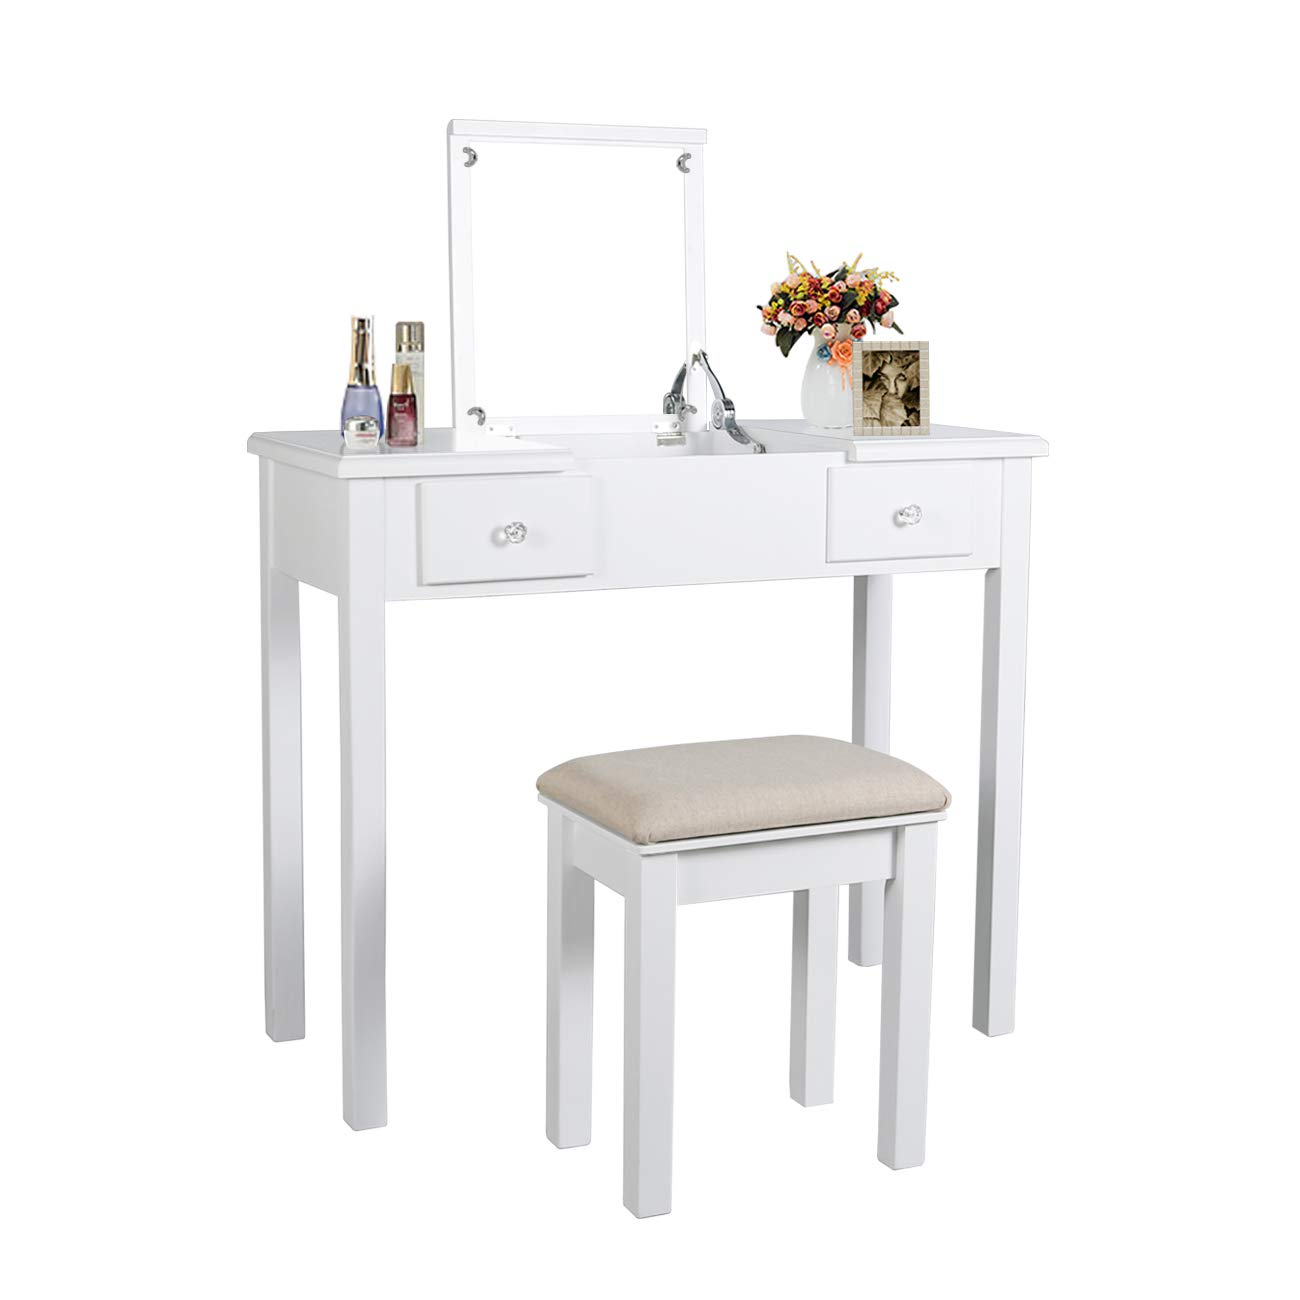 Vanity Set with Flip Top Mirror Makeup Dressing Table Removable Makeup Table Organization Writing Desk with 2 Drawers 3 Dividers Organizers Cushioned (White)